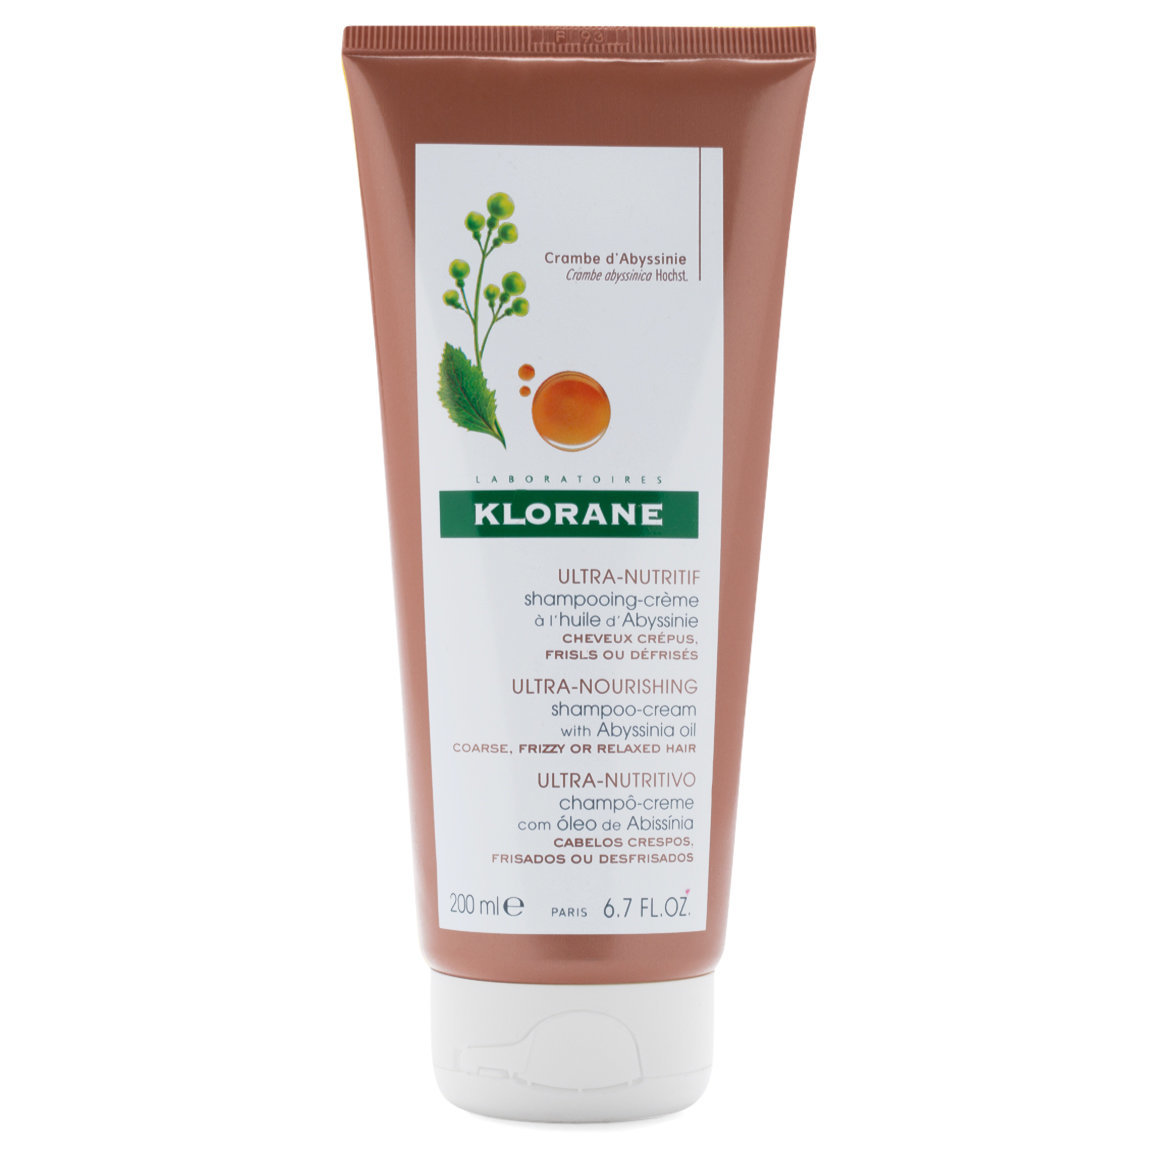 Klorane Shampoo-Cream with Abyssinia Oil product swatch.